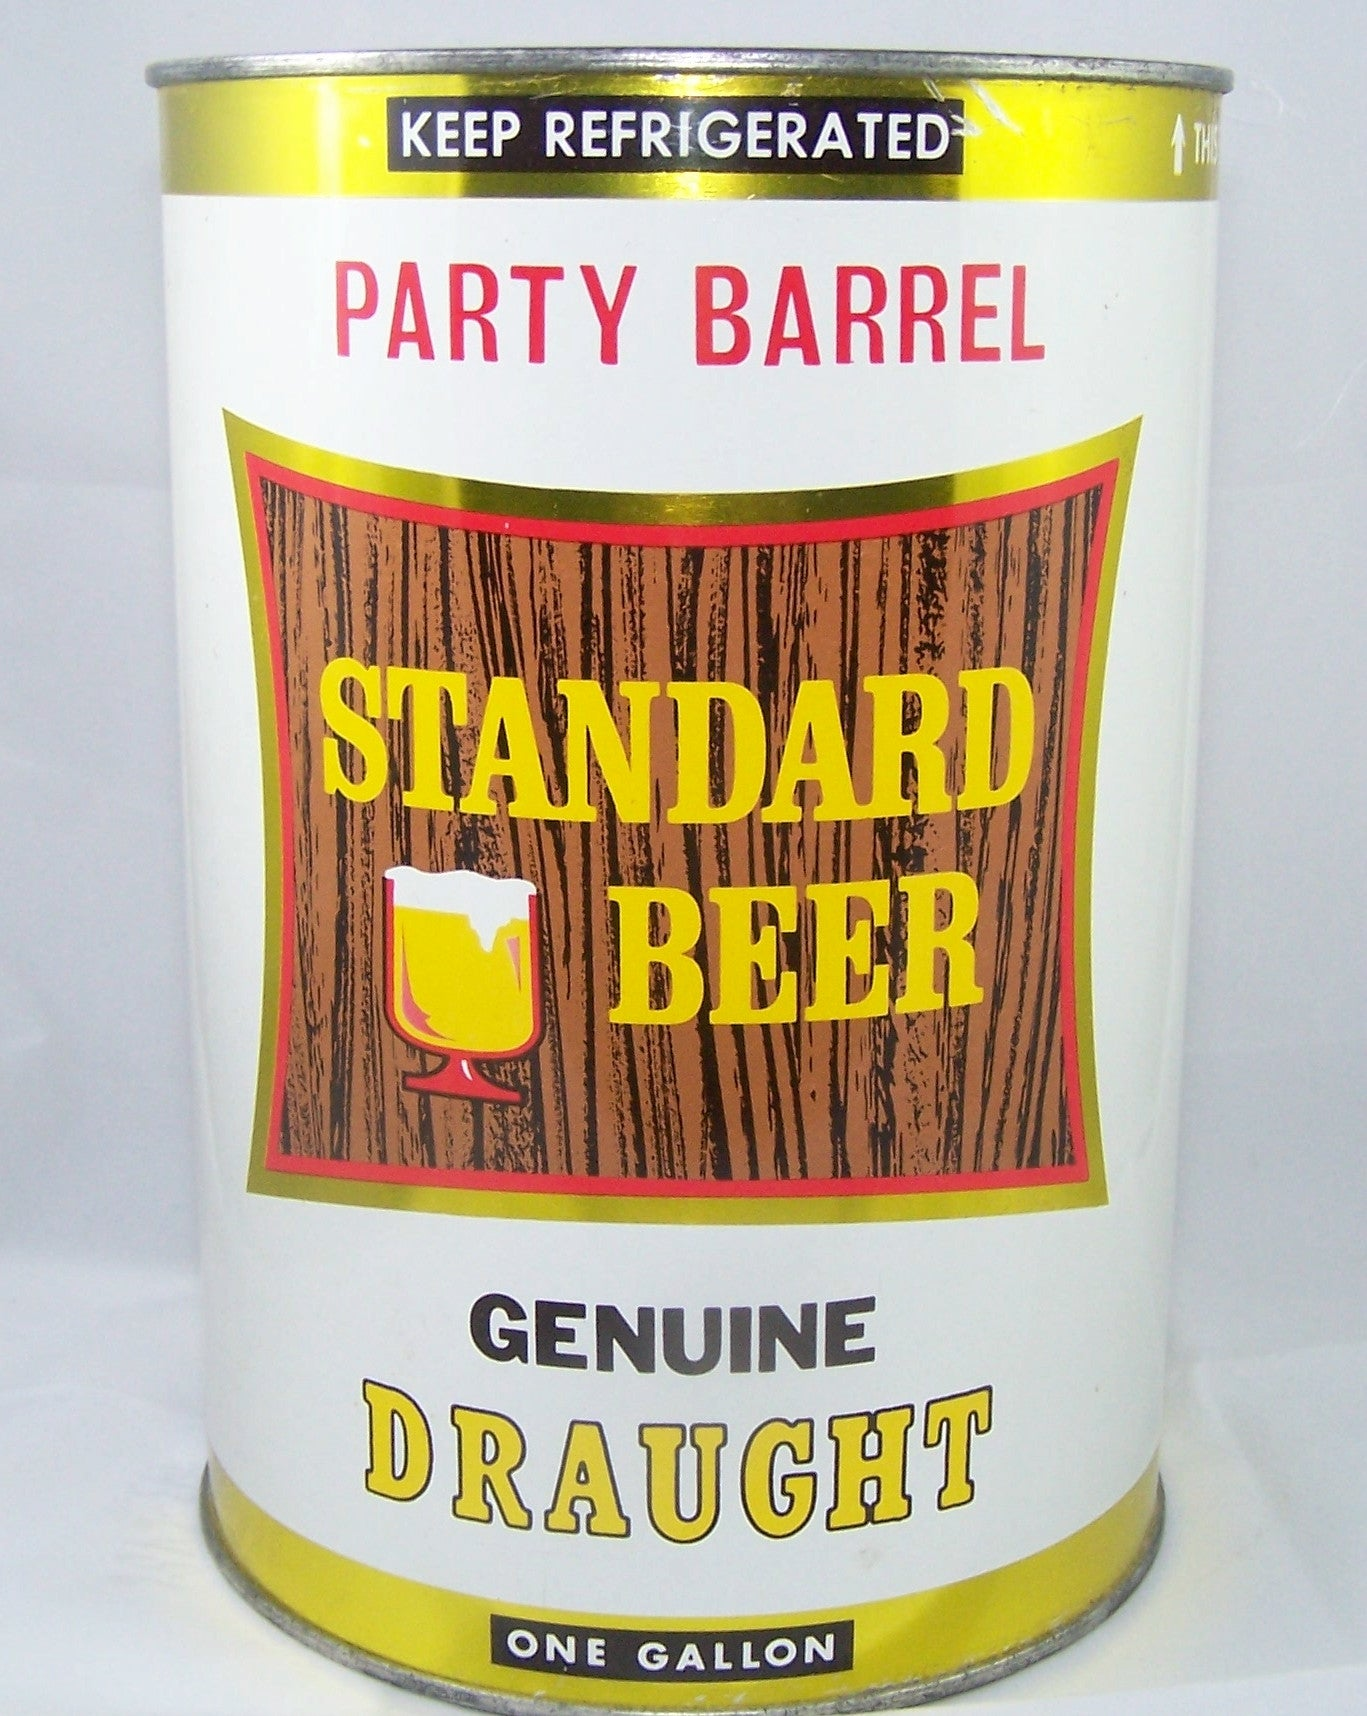 Standard Beer (Party Barrel) USBC 246-8, Grade A1+  Sold on 2/27/15